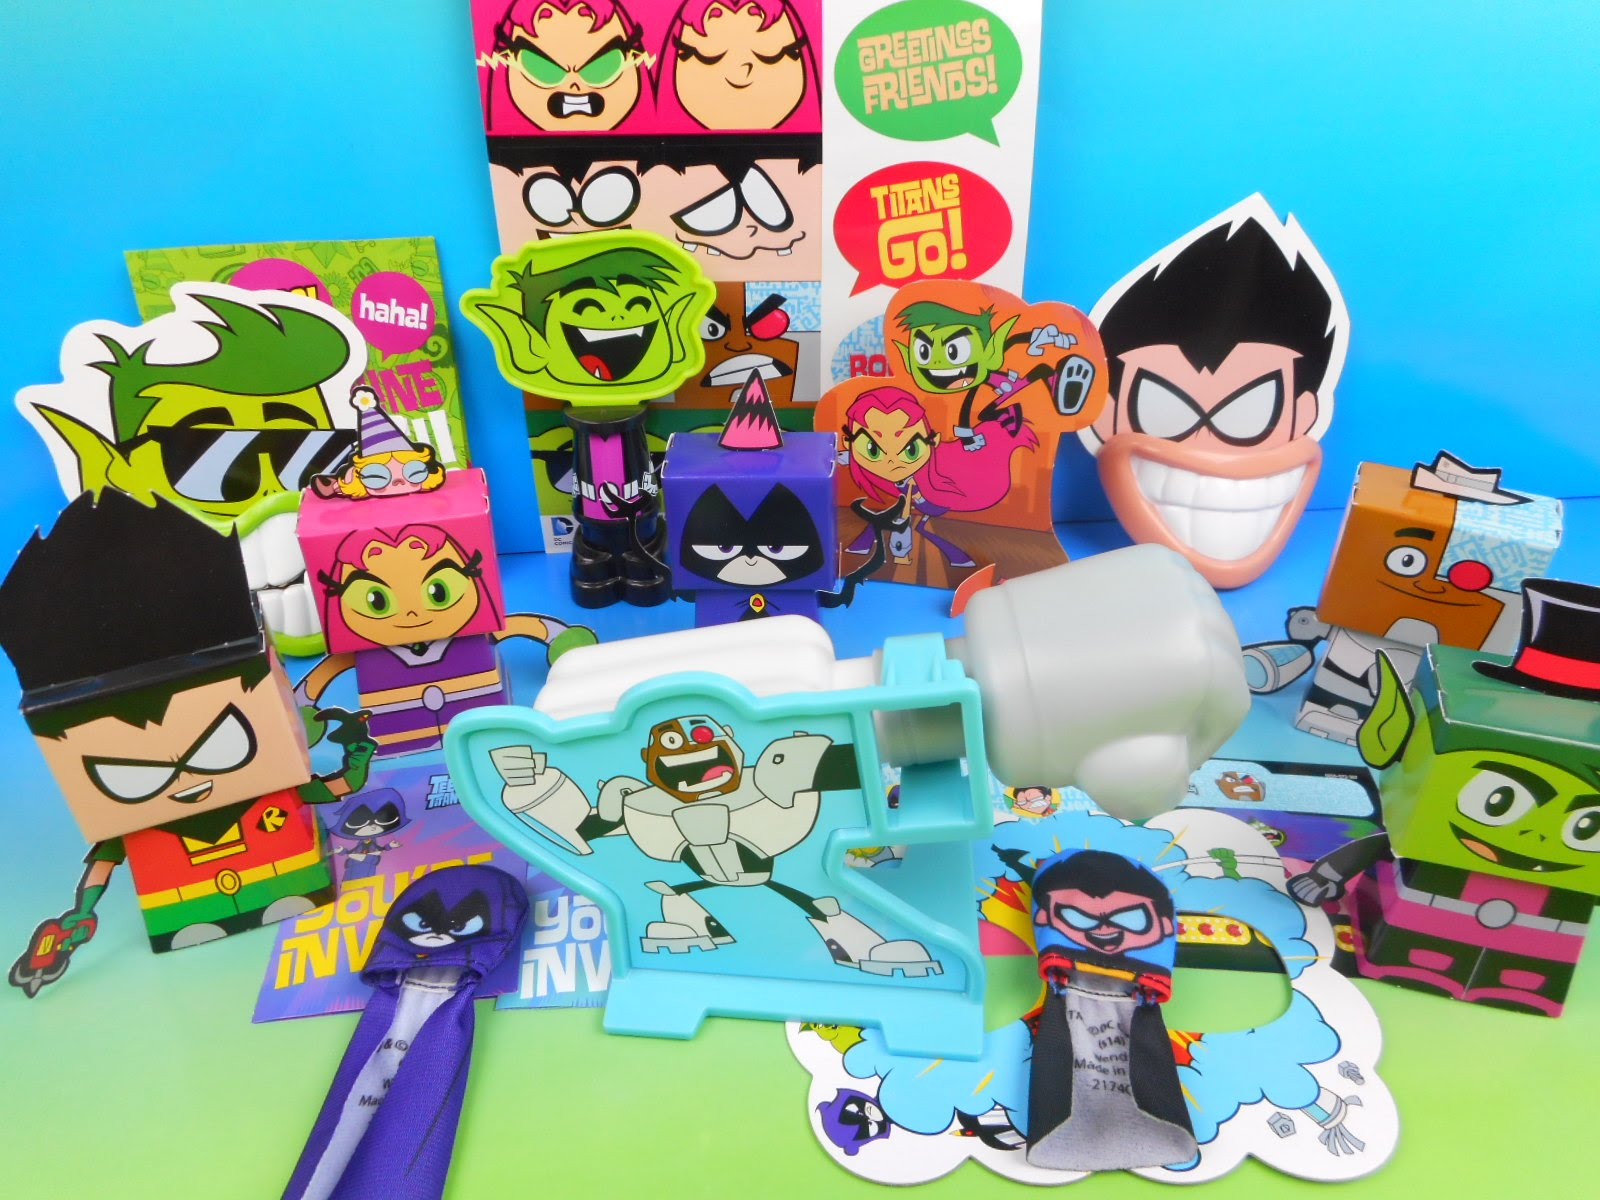 Teen Titan Toy : Action figure insider teen titans go featured in wendy